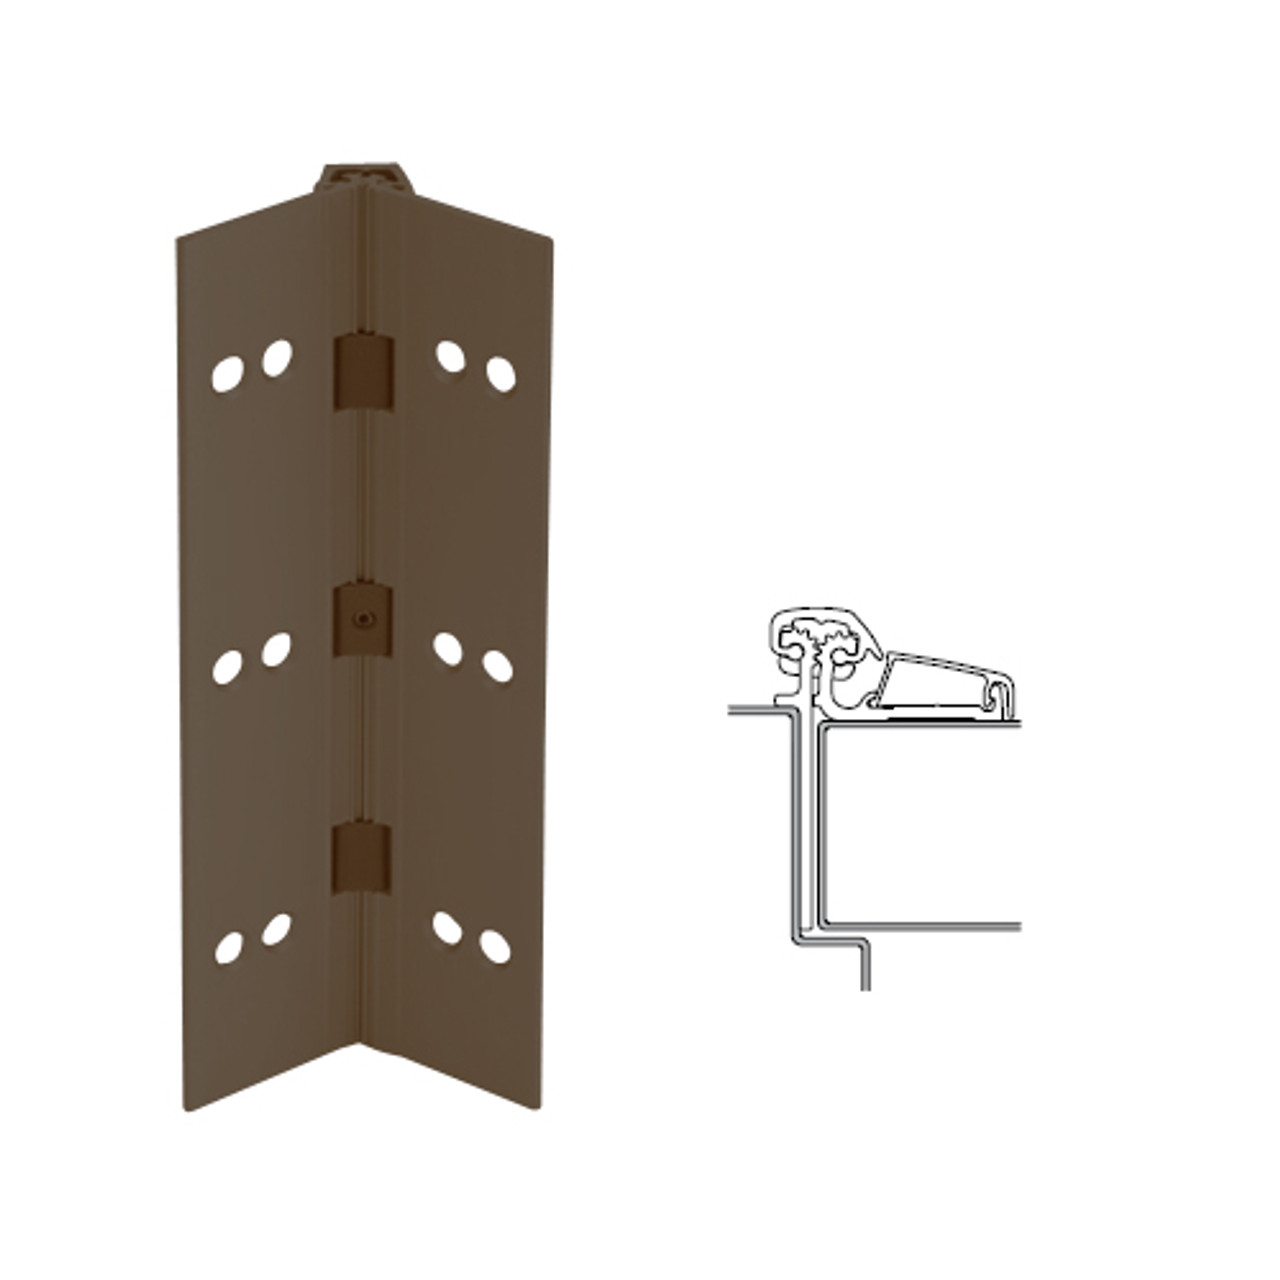 054XY-313AN-85-WD IVES Adjustable Half Surface Continuous Geared Hinges with Wood Screws in Dark Bronze Anodized